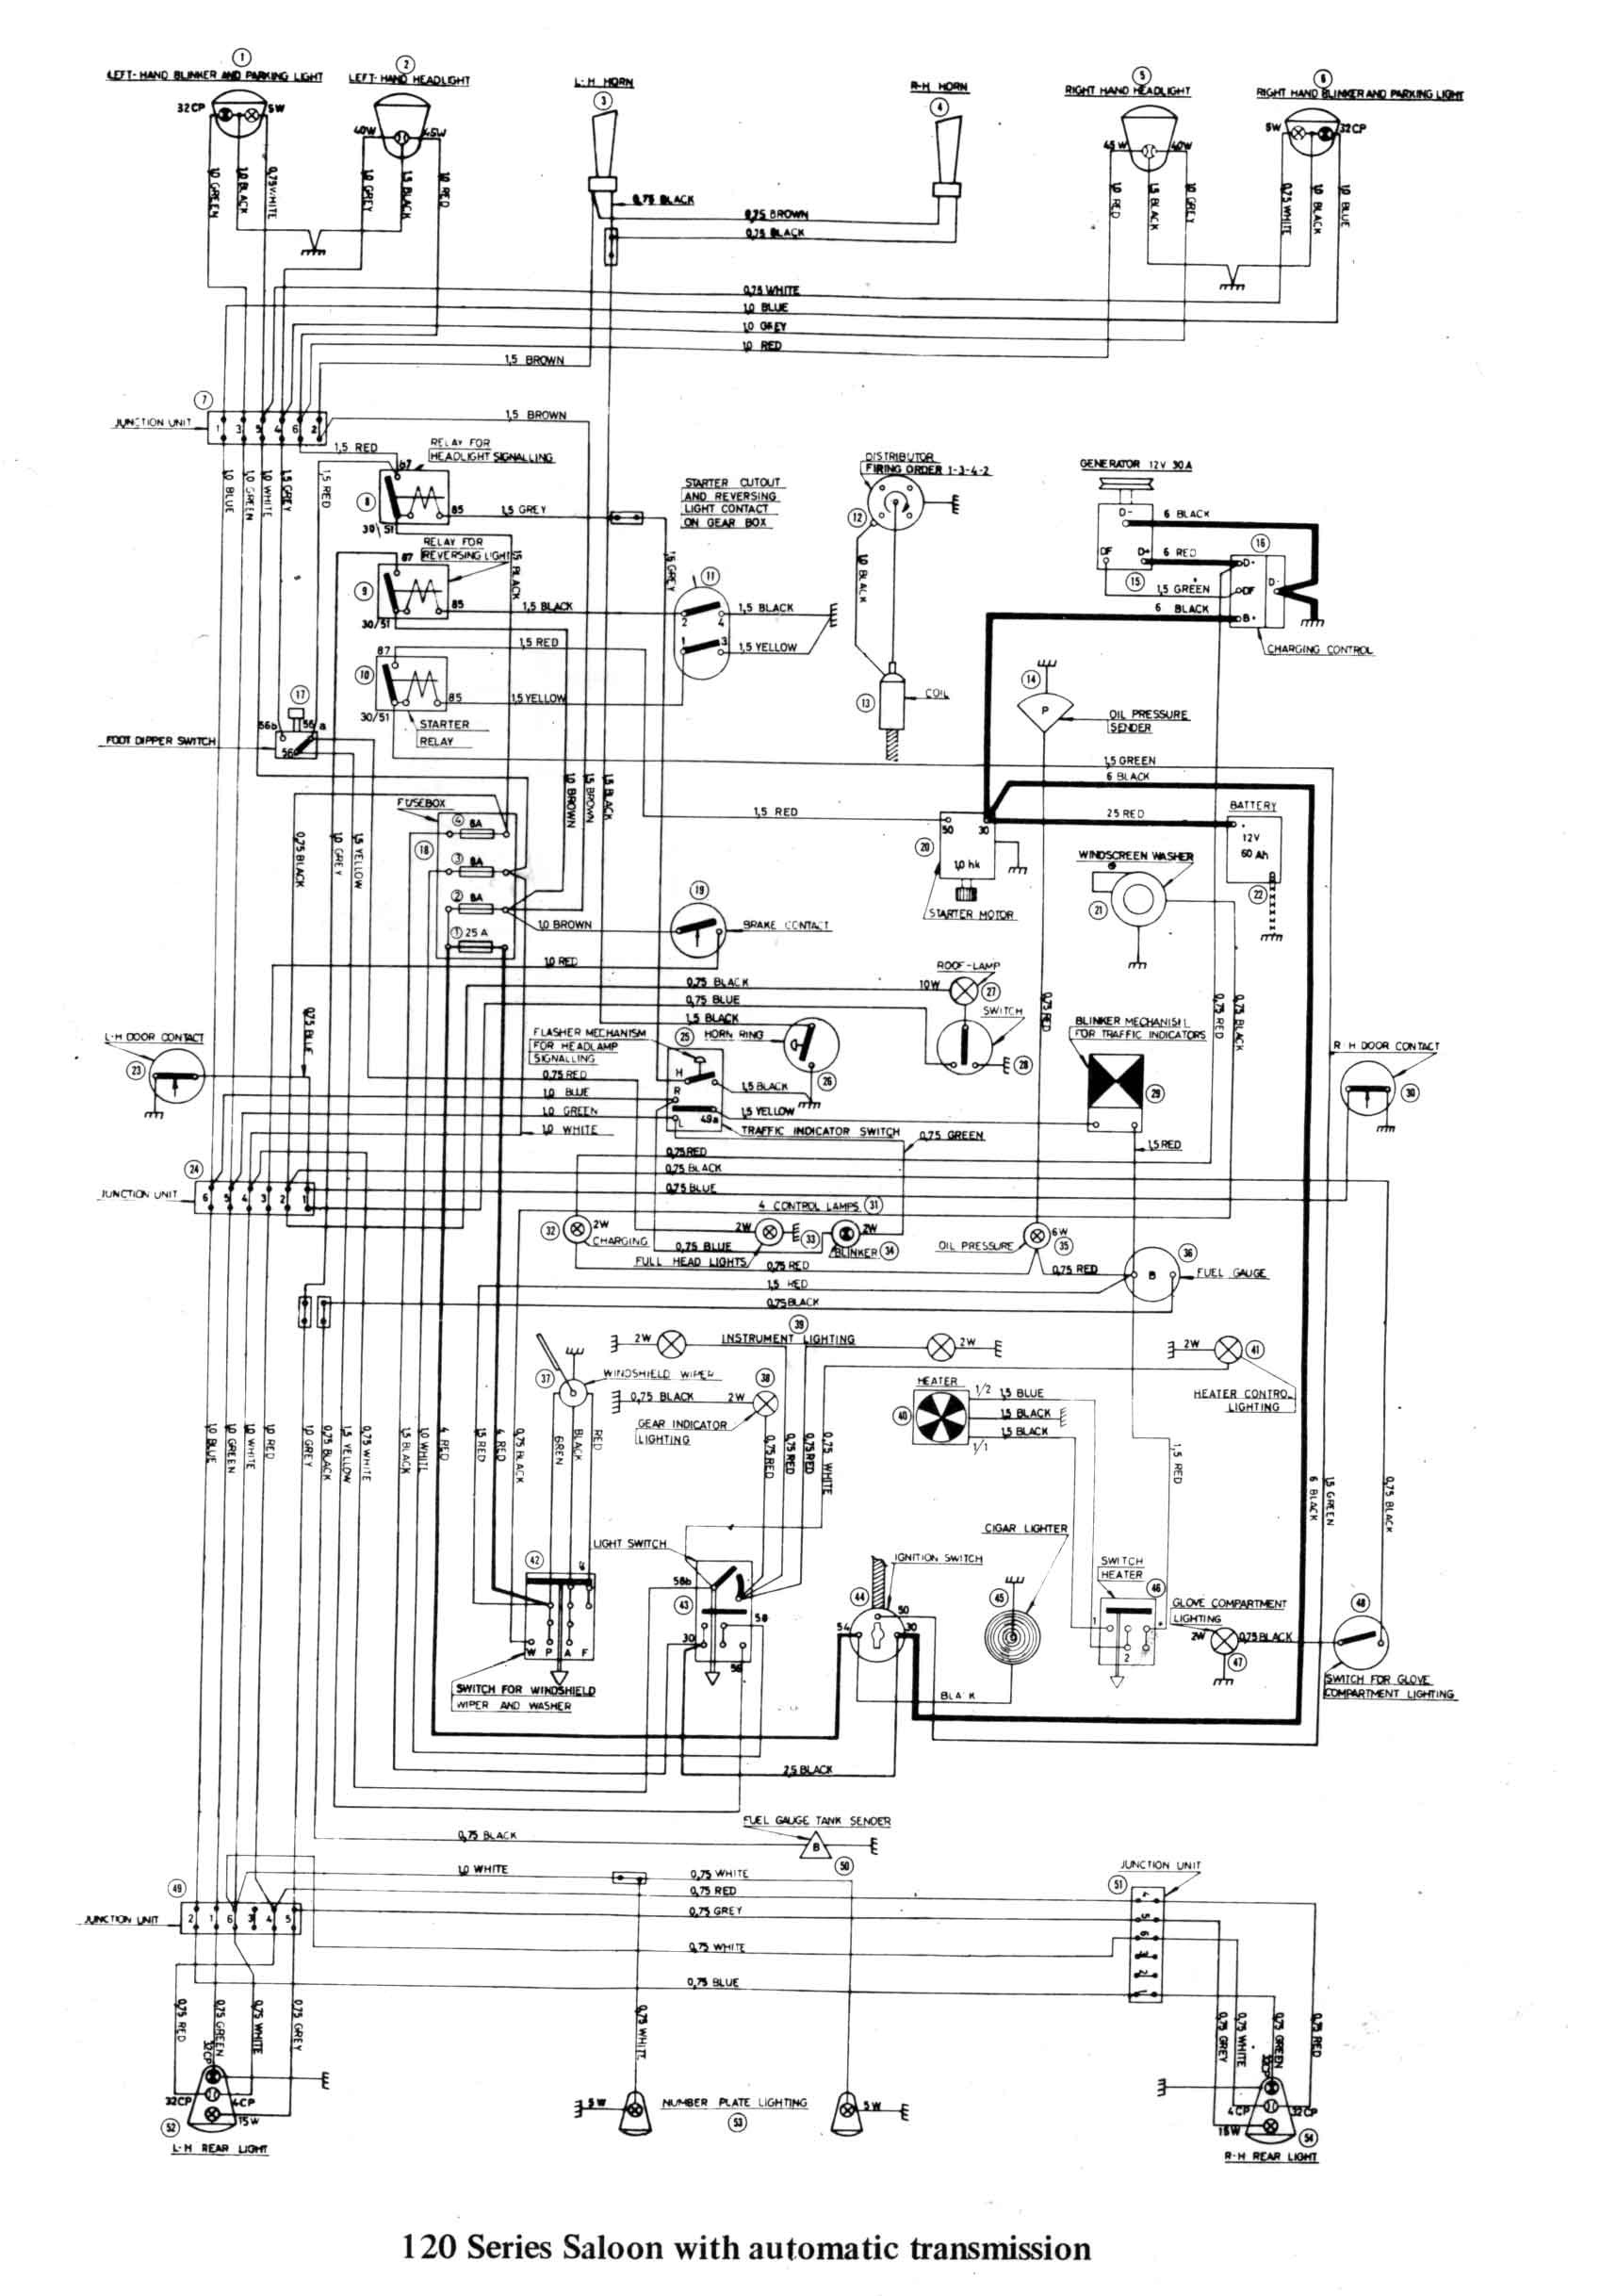 2000 Volvo S70 Fuse Box Diagram Wiring Library 2008 Taurus X 1998 Circuit Connection U2022 Scion Xb